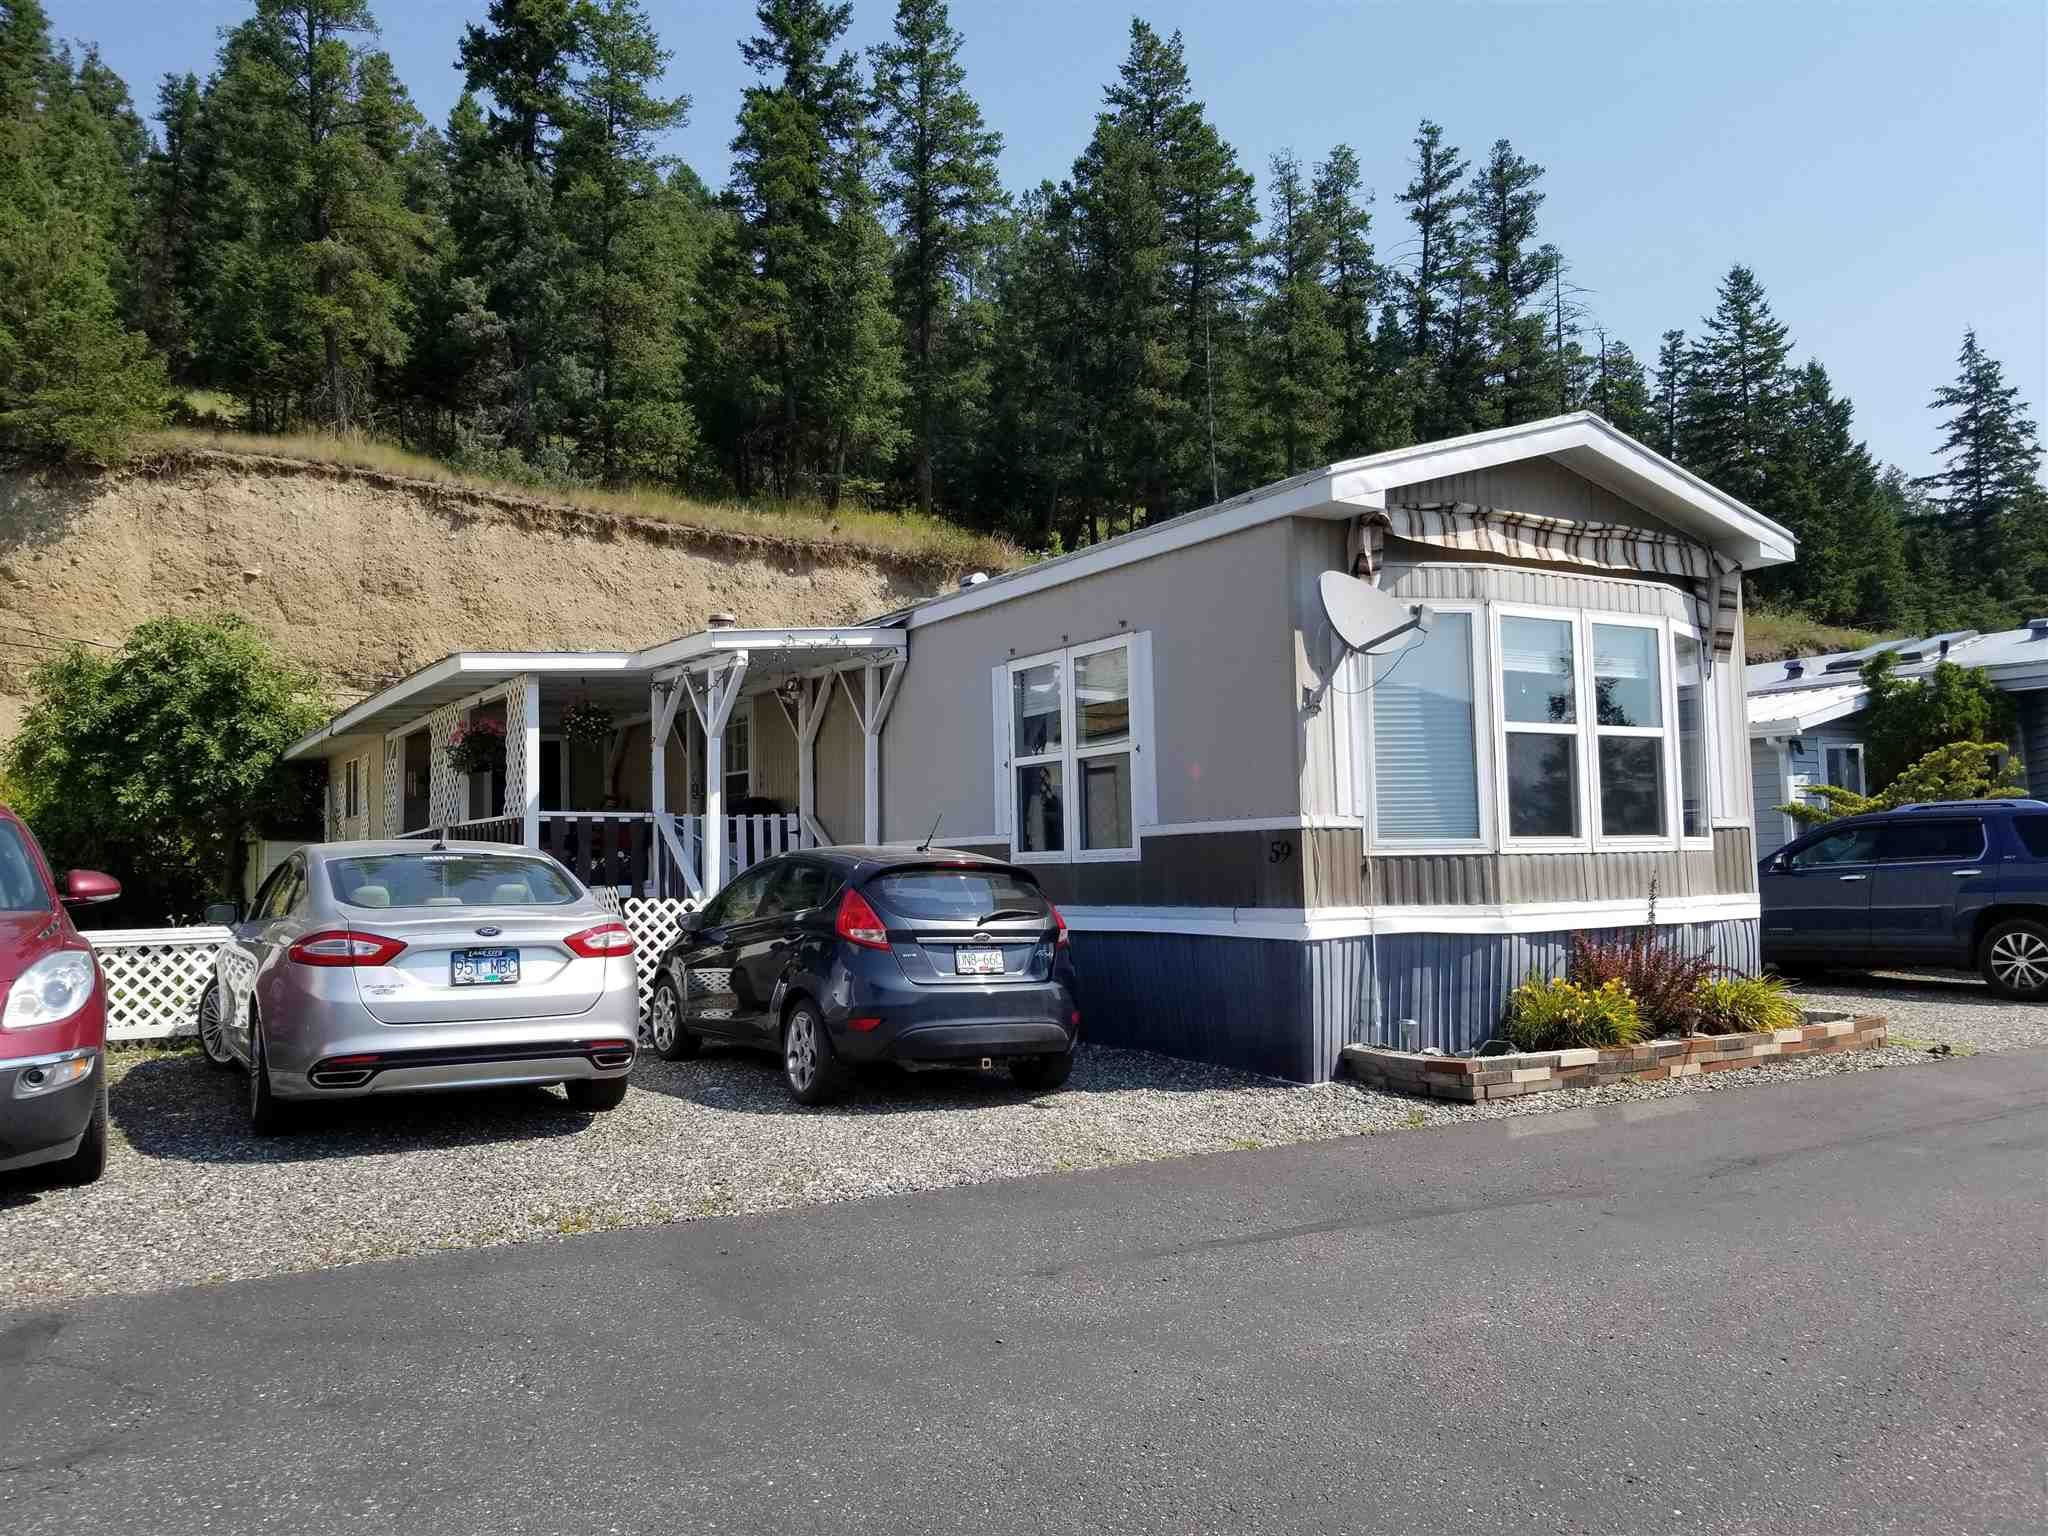 """Main Photo: 59 1700 S BROADWAY Avenue in Williams Lake: Williams Lake - City Manufactured Home for sale in """"NORTHSIDE VILLAGE"""" (Williams Lake (Zone 27))  : MLS®# R2600772"""